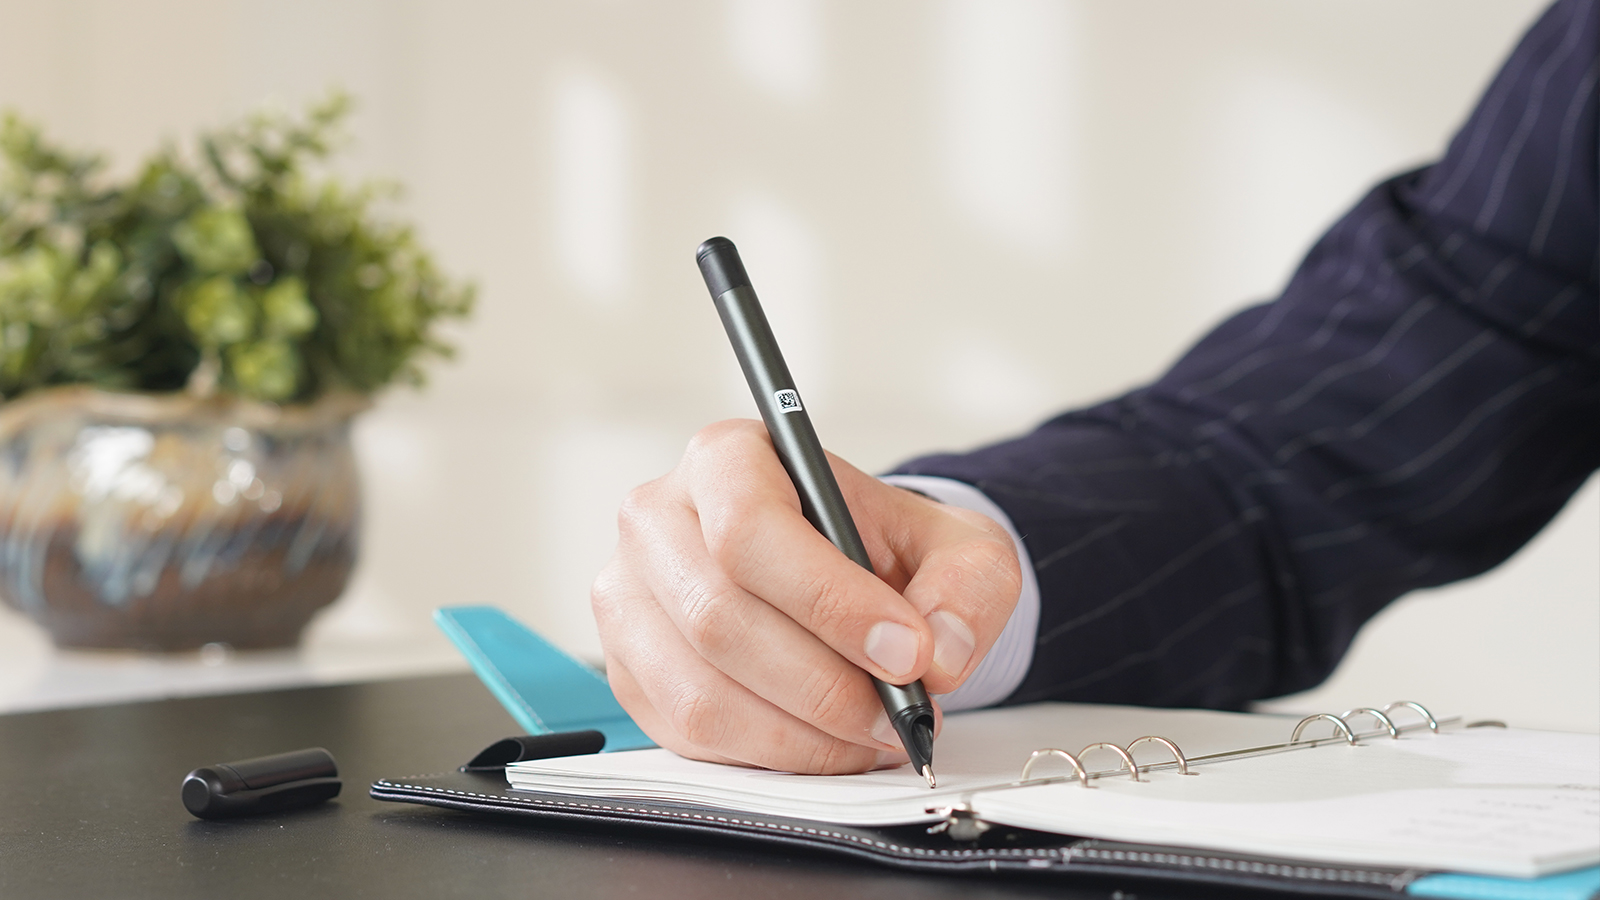 NEWYES SyncPen2 Generation-Digitize your notes and sketches